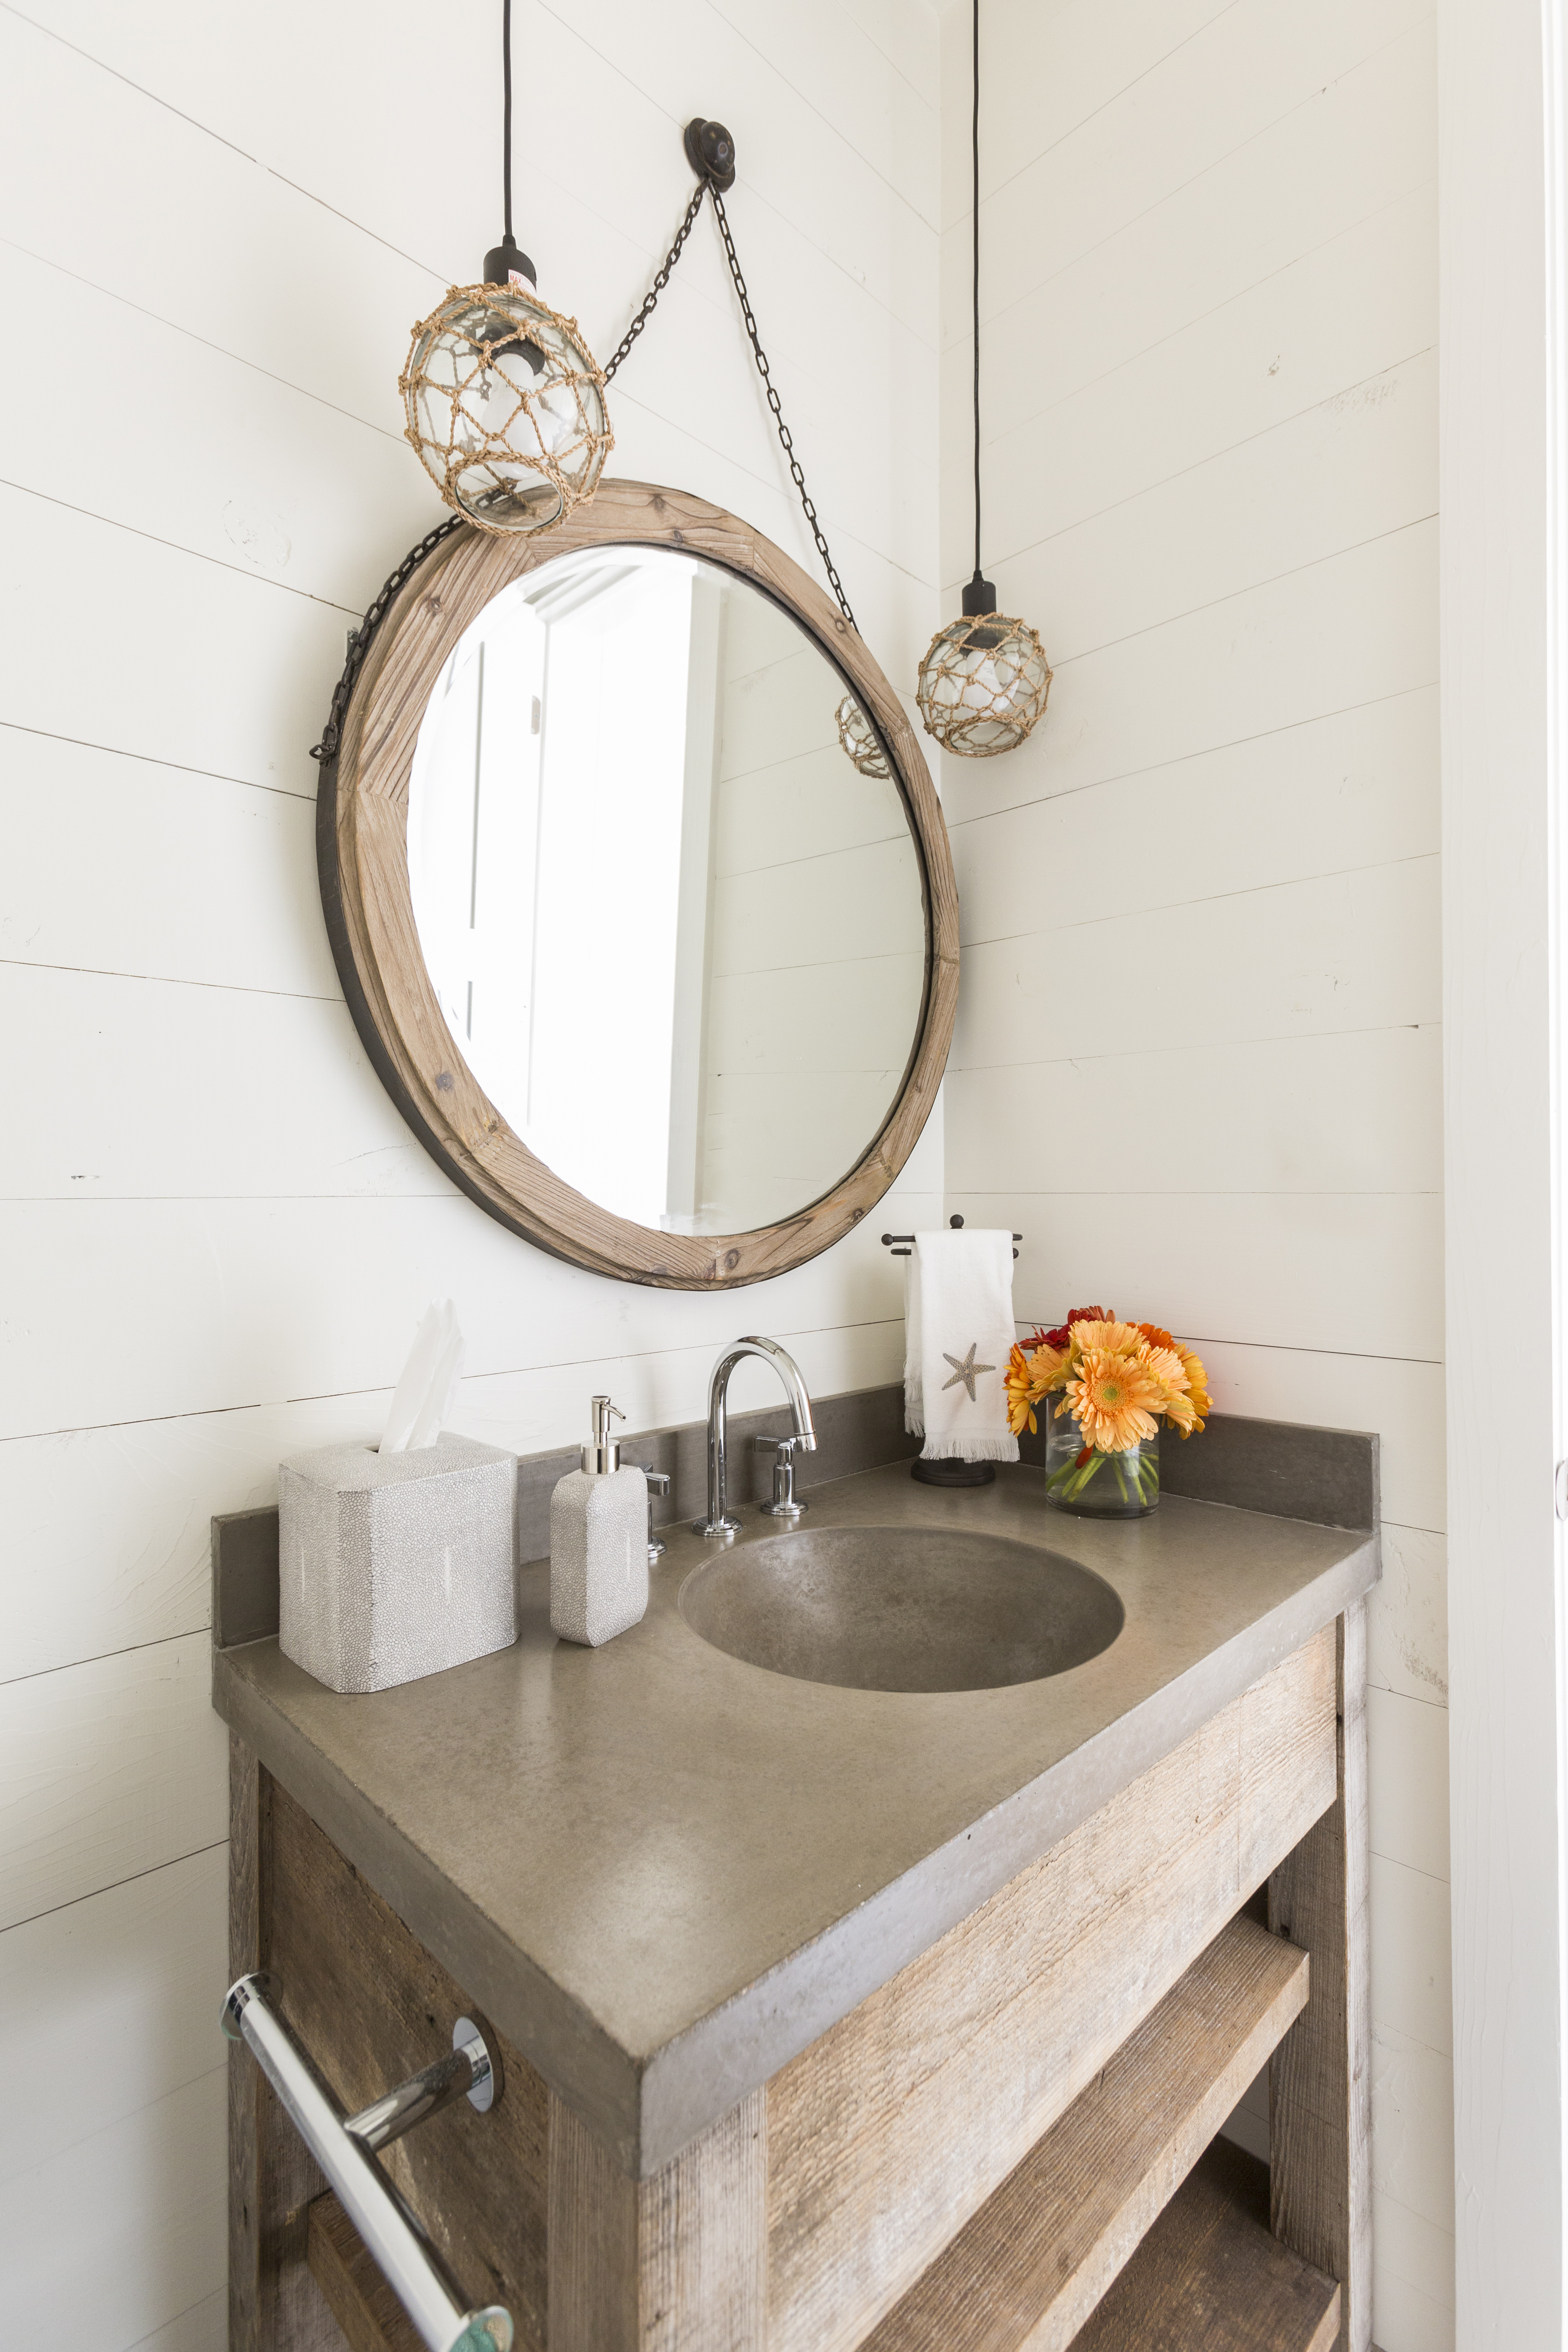 we 39 re obsessed with round mirrors in the bathroom laura. Black Bedroom Furniture Sets. Home Design Ideas